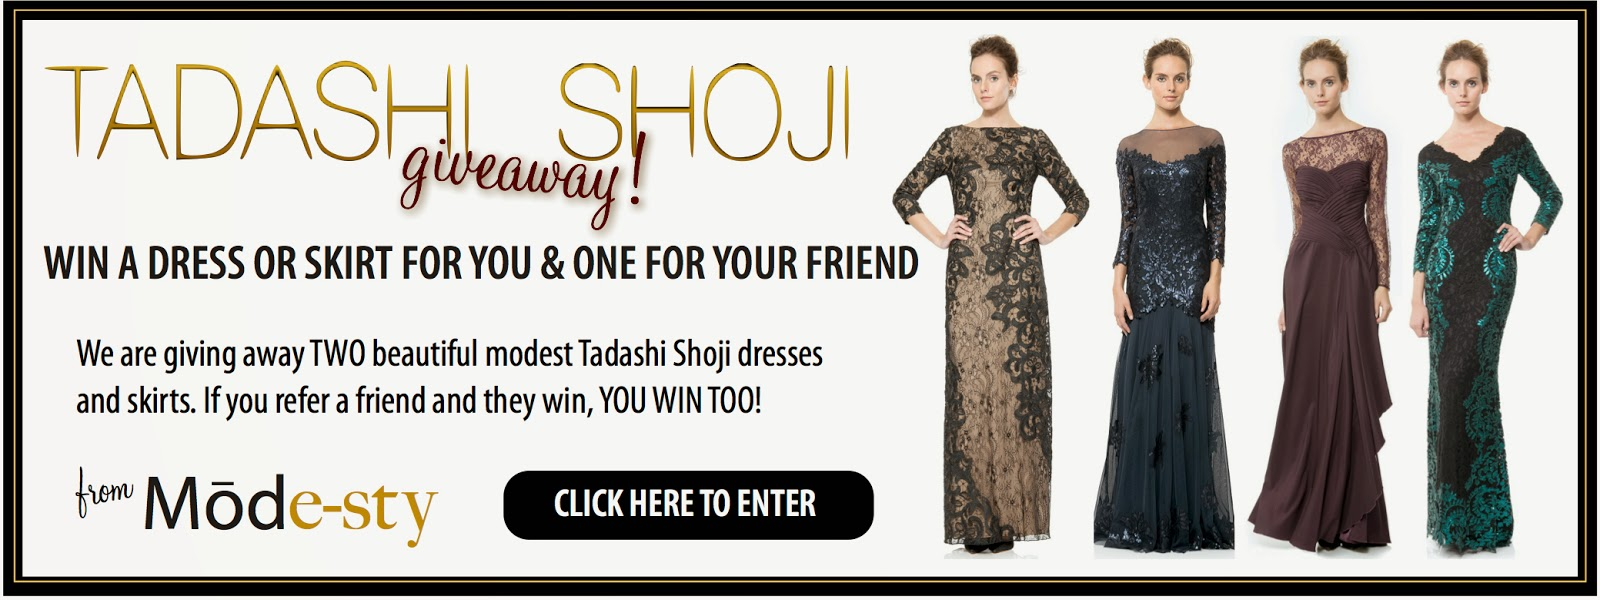 win long sleeve evening gown modest formal wear designer dress by Tadashi Shoji hijab tznius fashion style giveaway